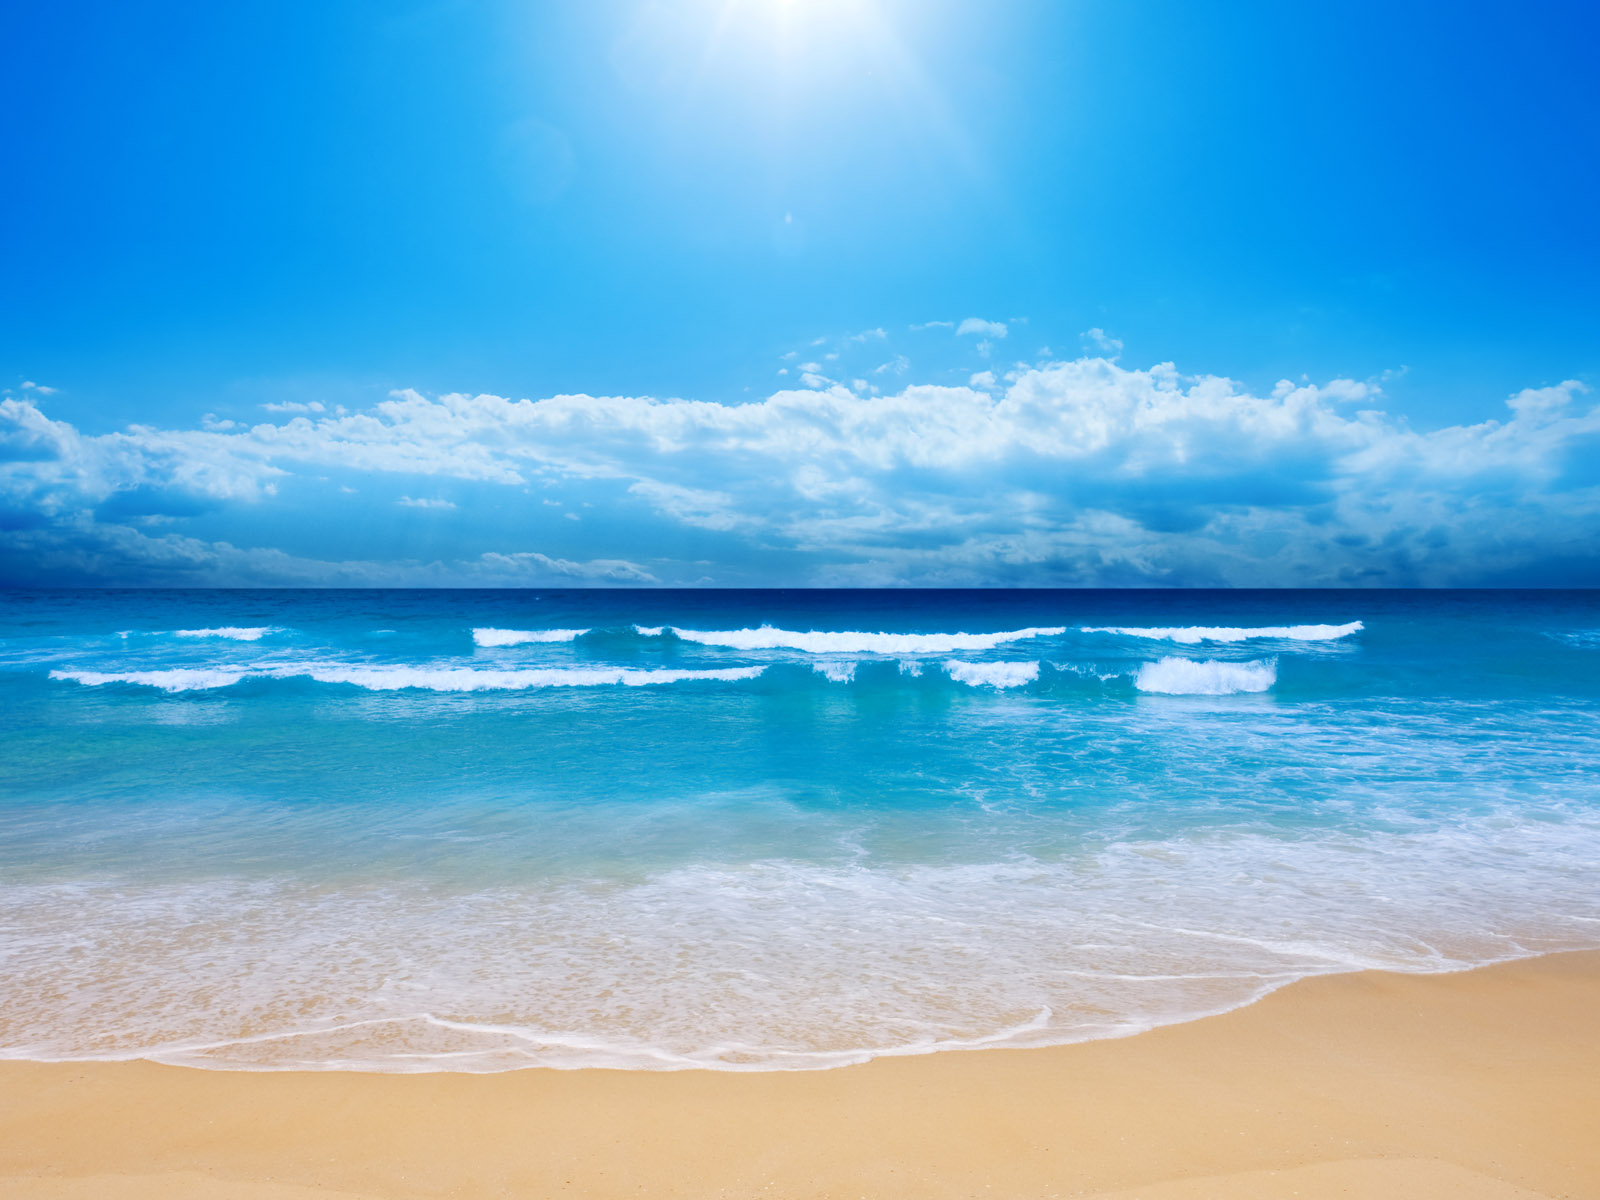 ... : High Definition Beach Wallpapers|Beach Images|Beautiful Scene